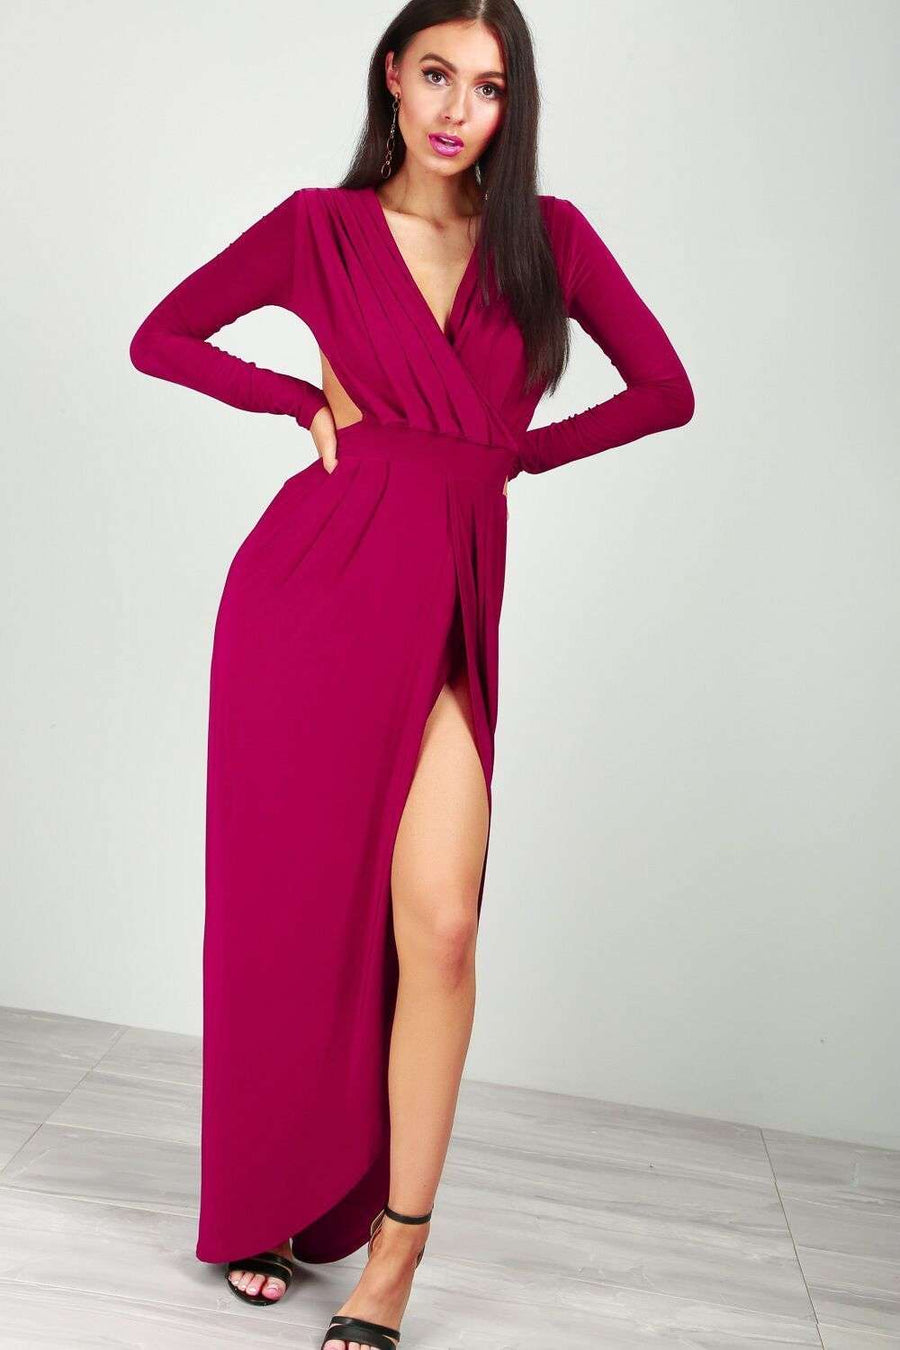 Emy Long Sleeve Open Back Wrap Maxi Dress - bejealous-com